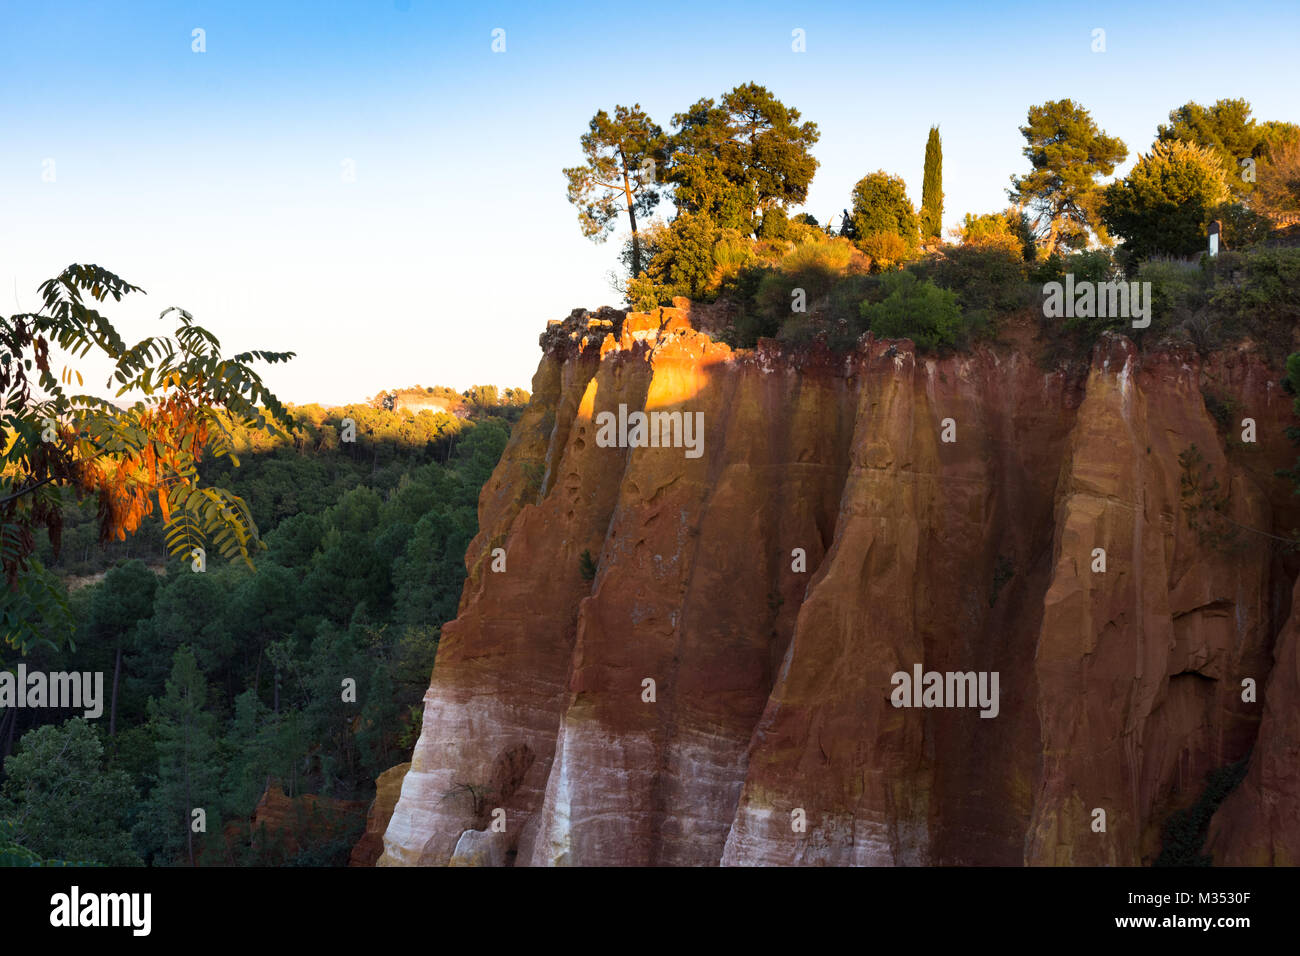 Dramatic ochre cliffs topped with lush vegetation photographed in Roussillon France at sunset. - Stock Image